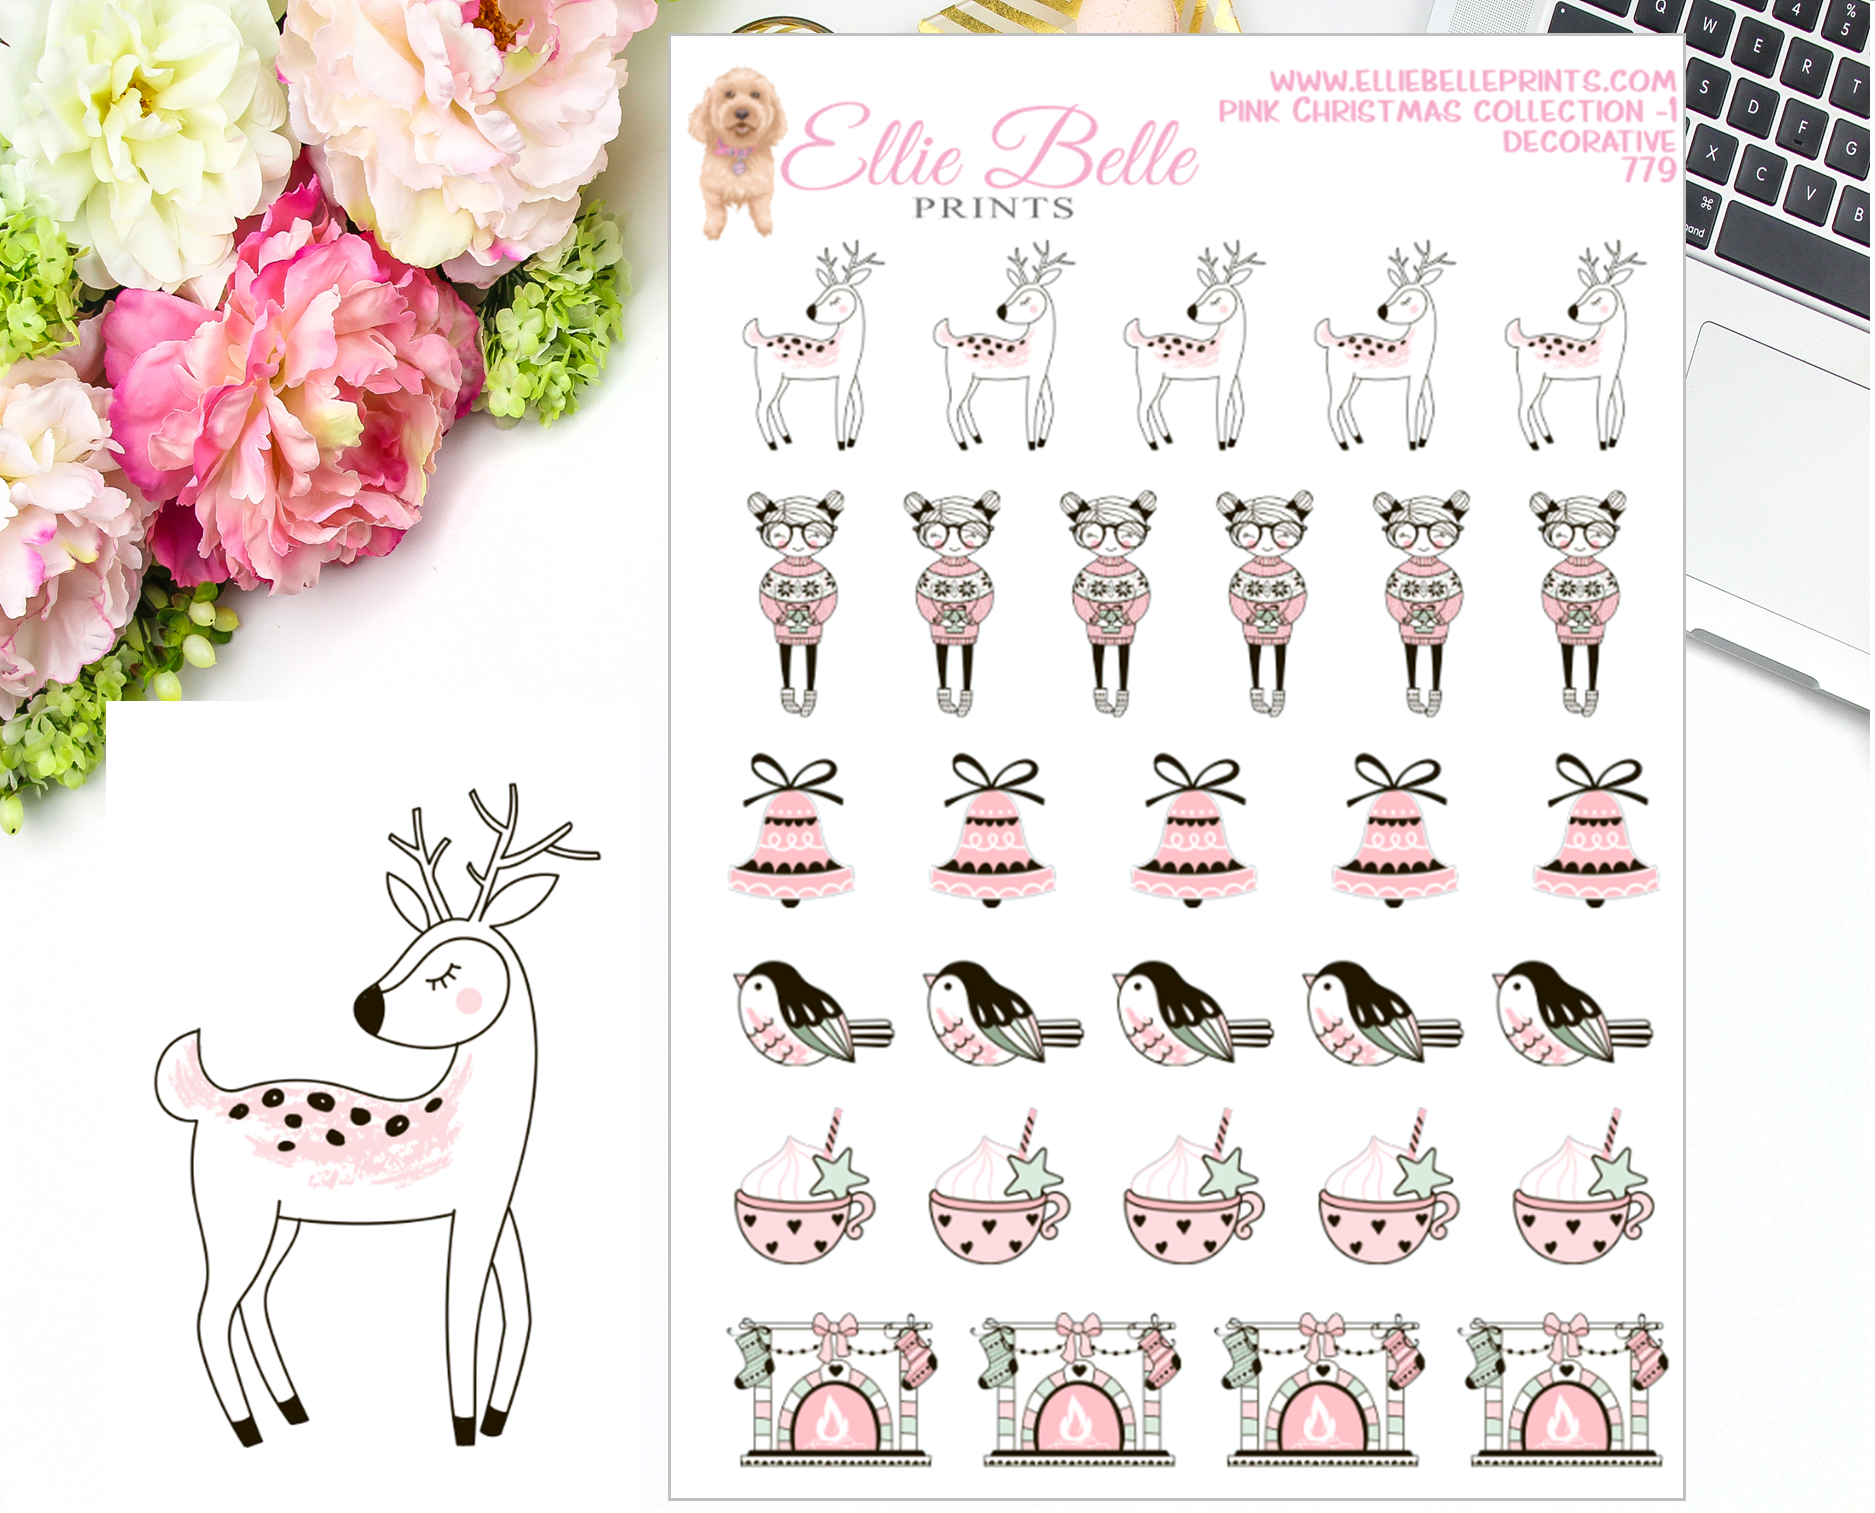 Pink Christmas Collection 1 Decorative Stickers